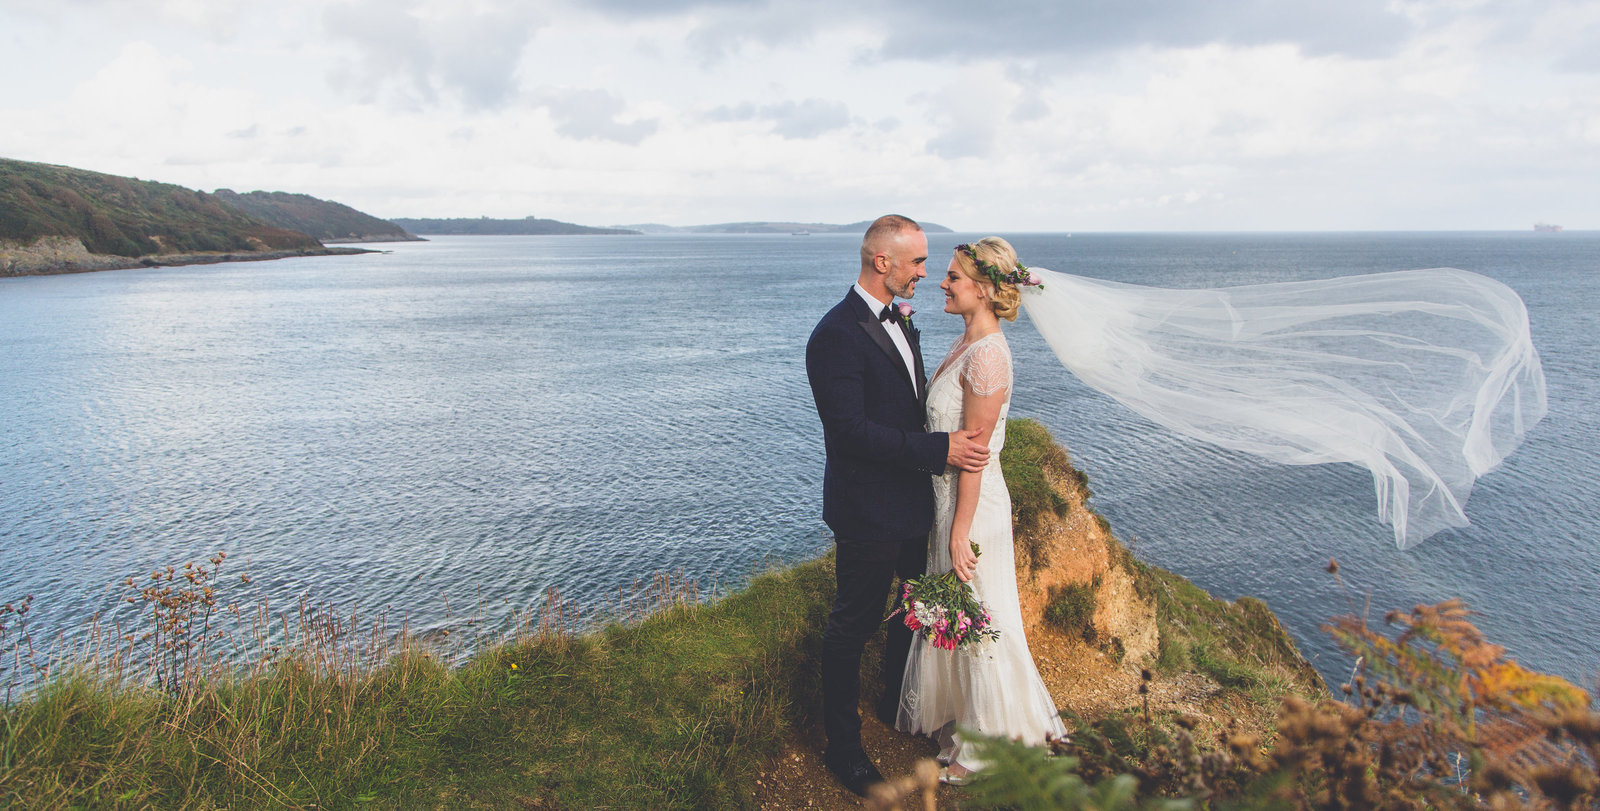 Cornwall wedding photographer - Andrew George-1-4